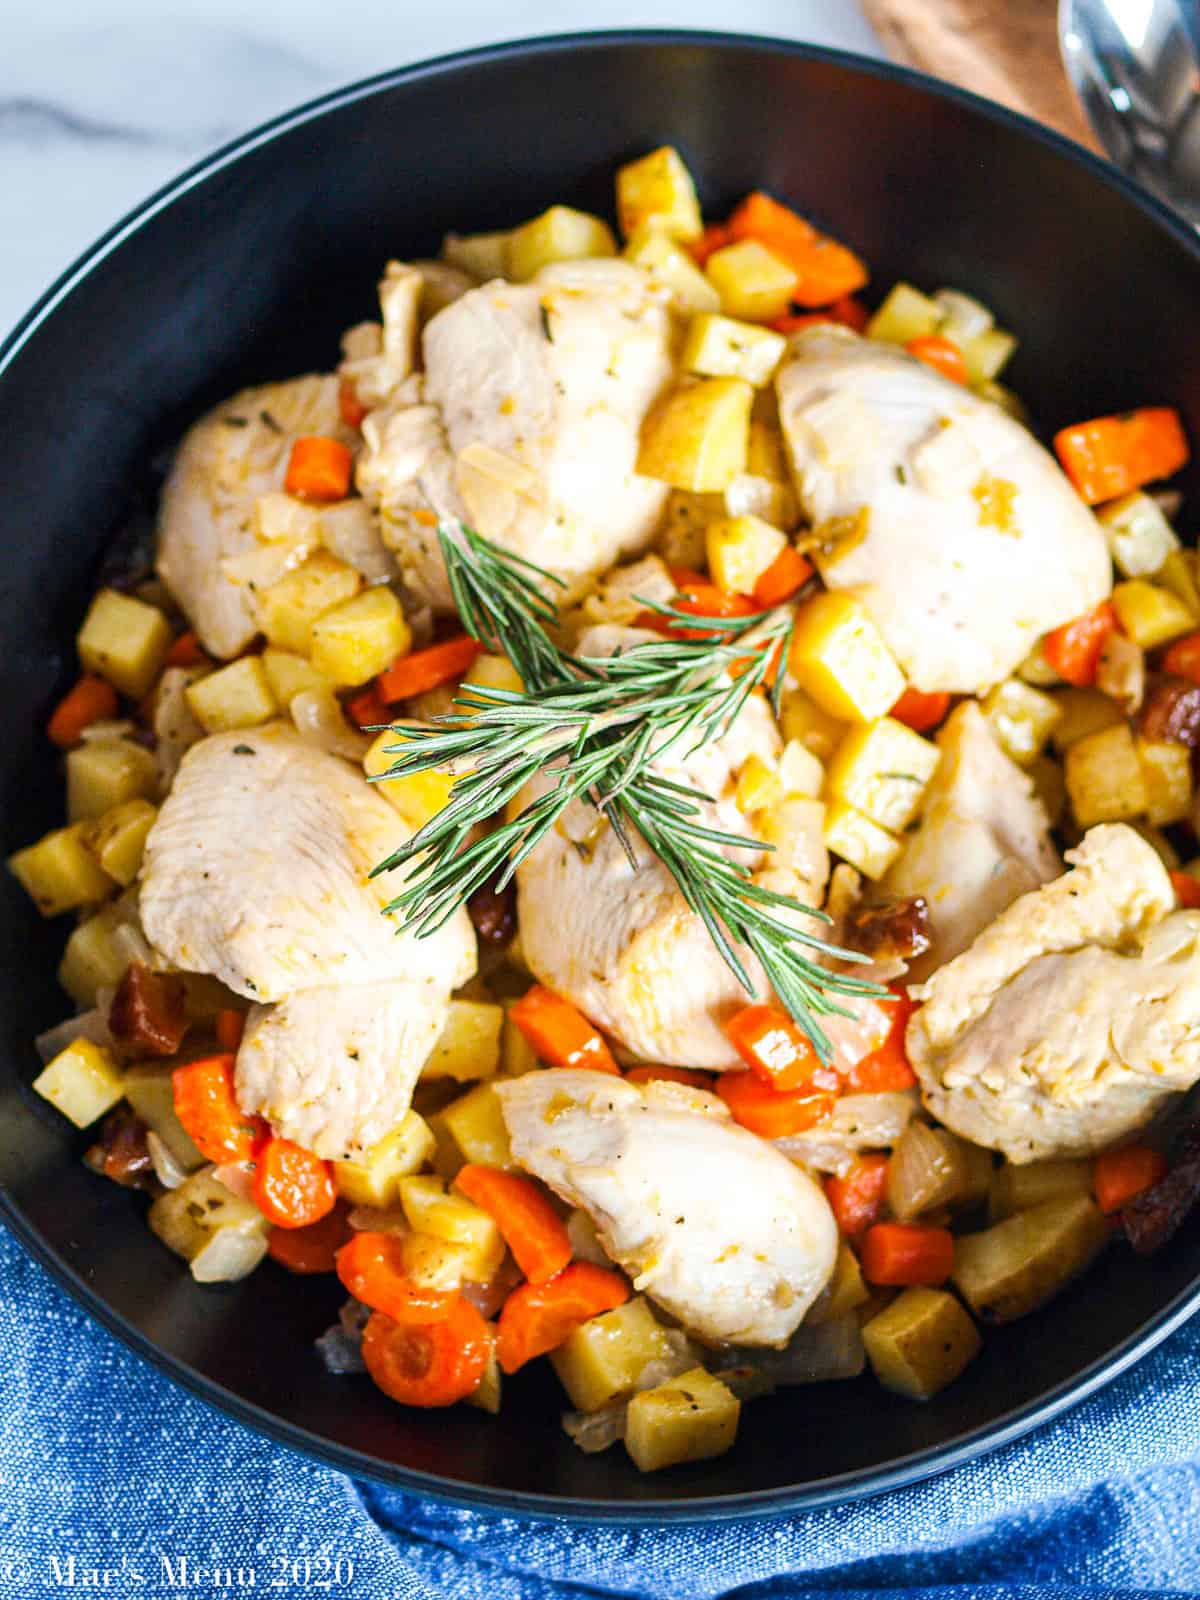 An overhead shot of a large black serving bowl with sheet pan apricot chicken and vegetables in it